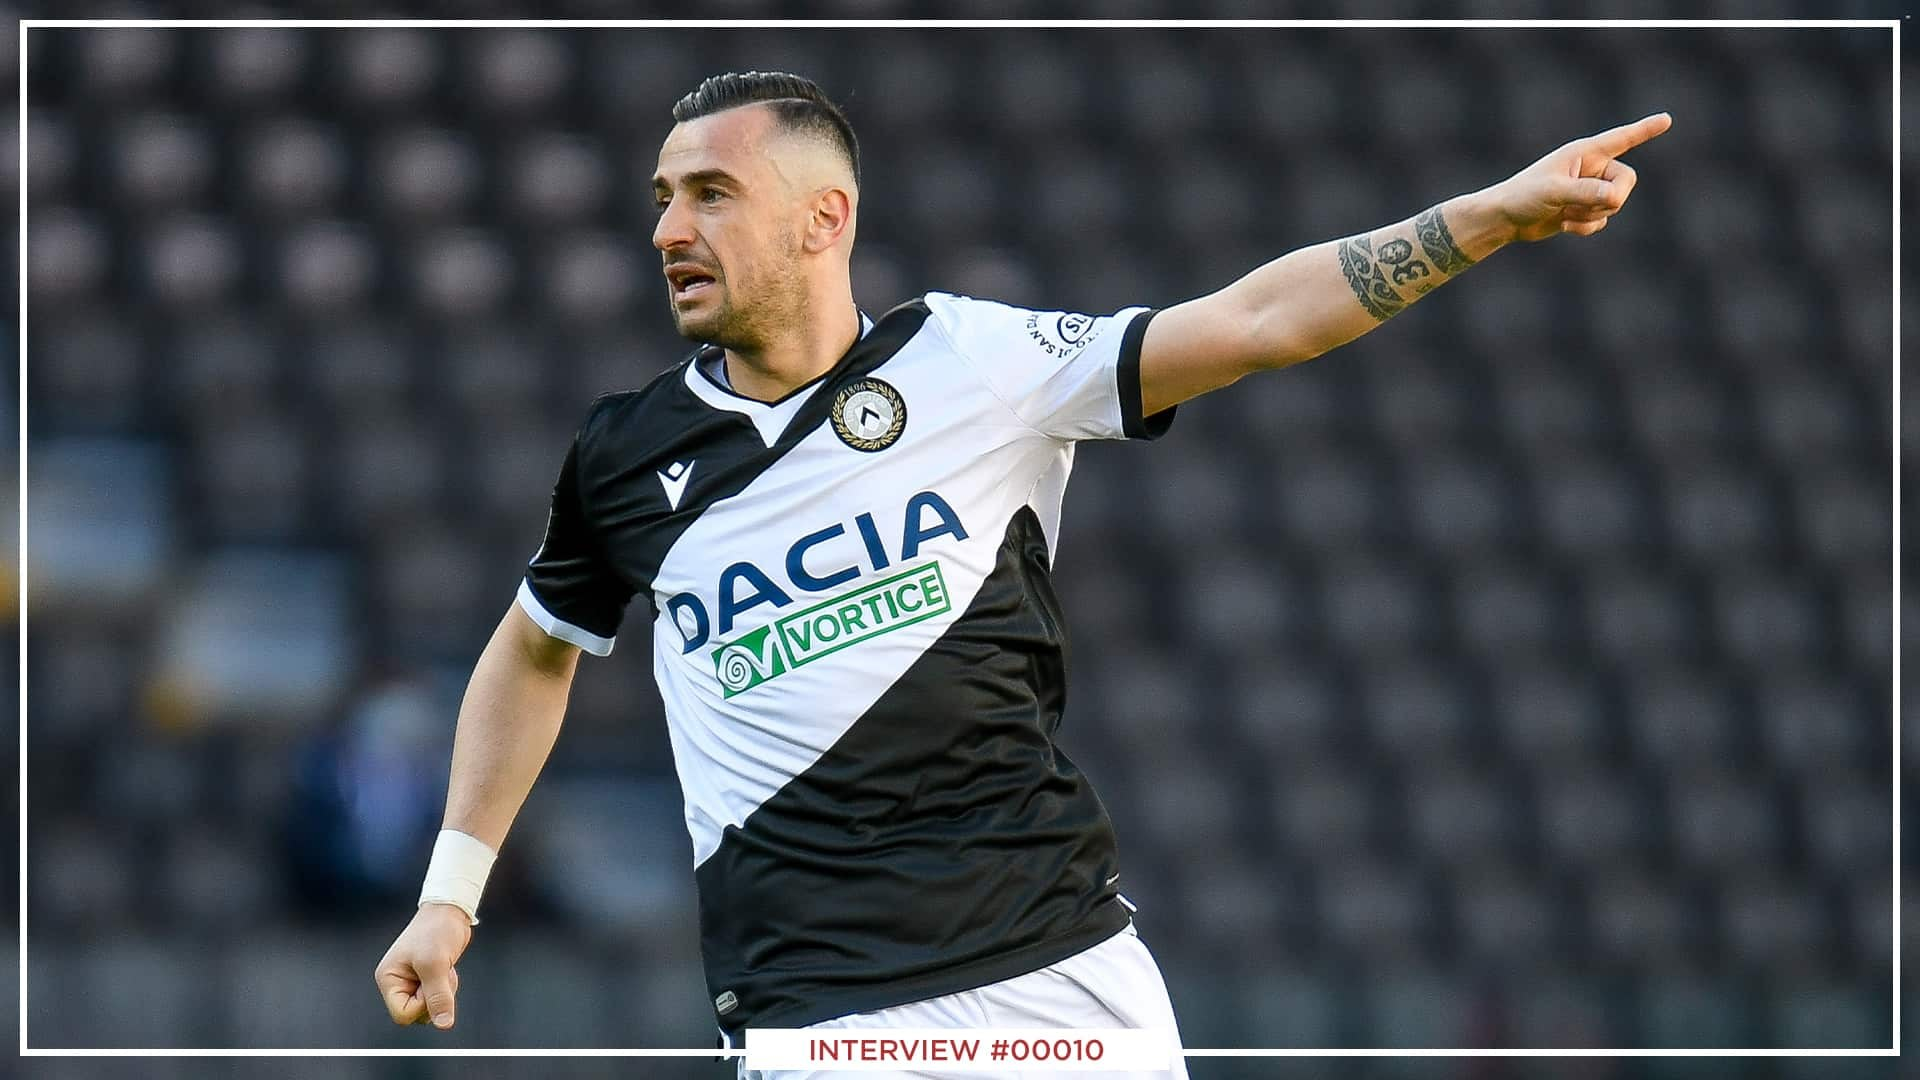 An image of Ilija Nestorovski, in a black football jersye with white details, and white shorts. He is pointing with his finder while running on the football playground.